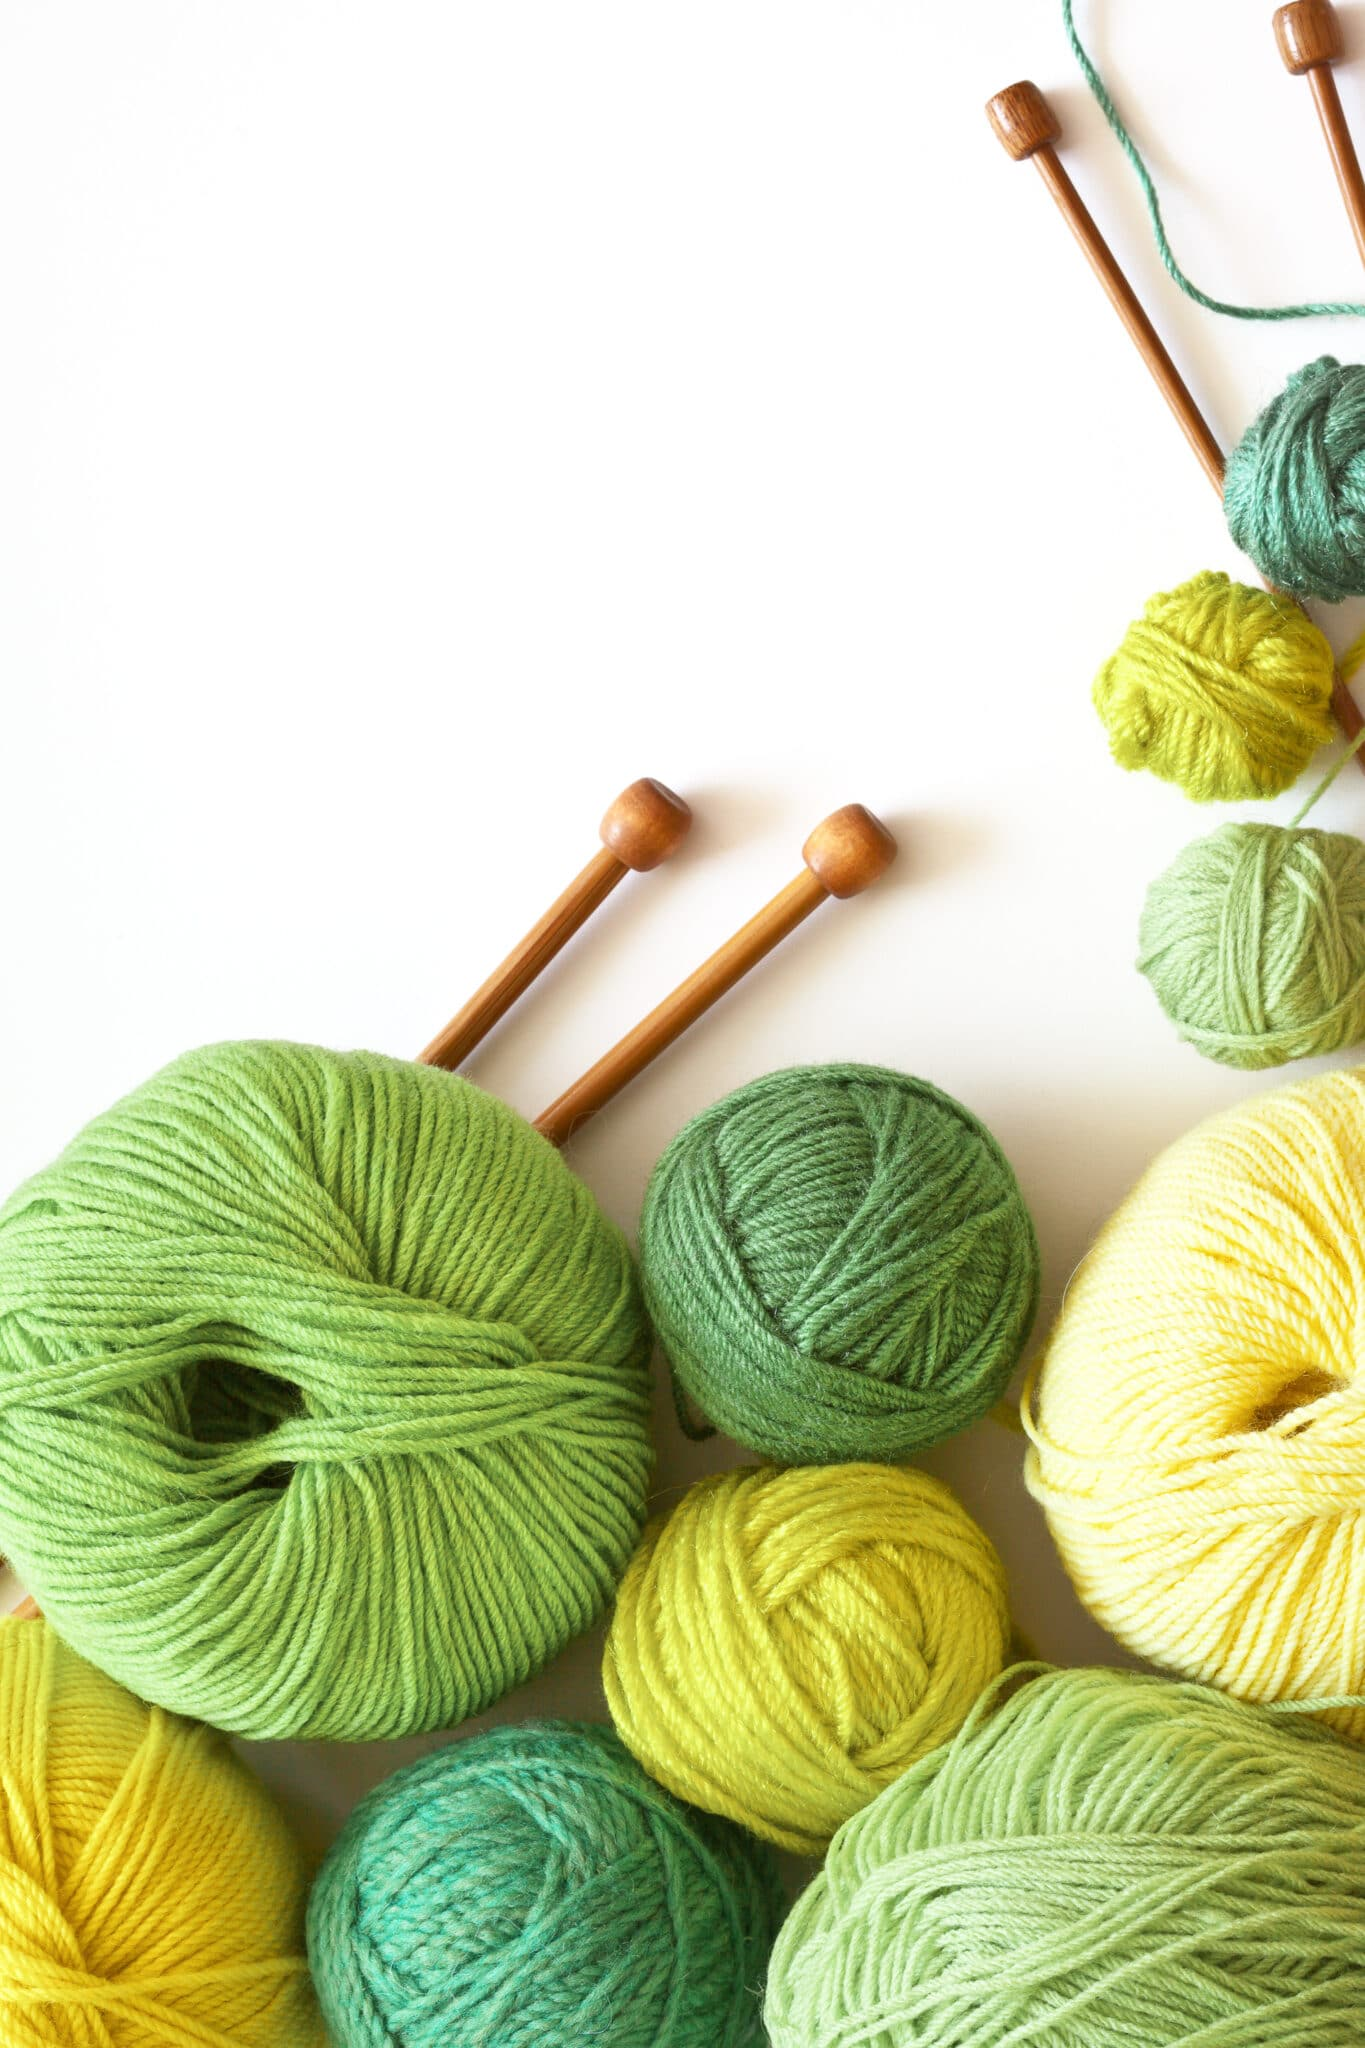 Knitting, needlework and hobbies. Green and yellow balls of yarn for hand knitting and wooden needles on a white background. Empty space for text. Flat lay, close up, macro.